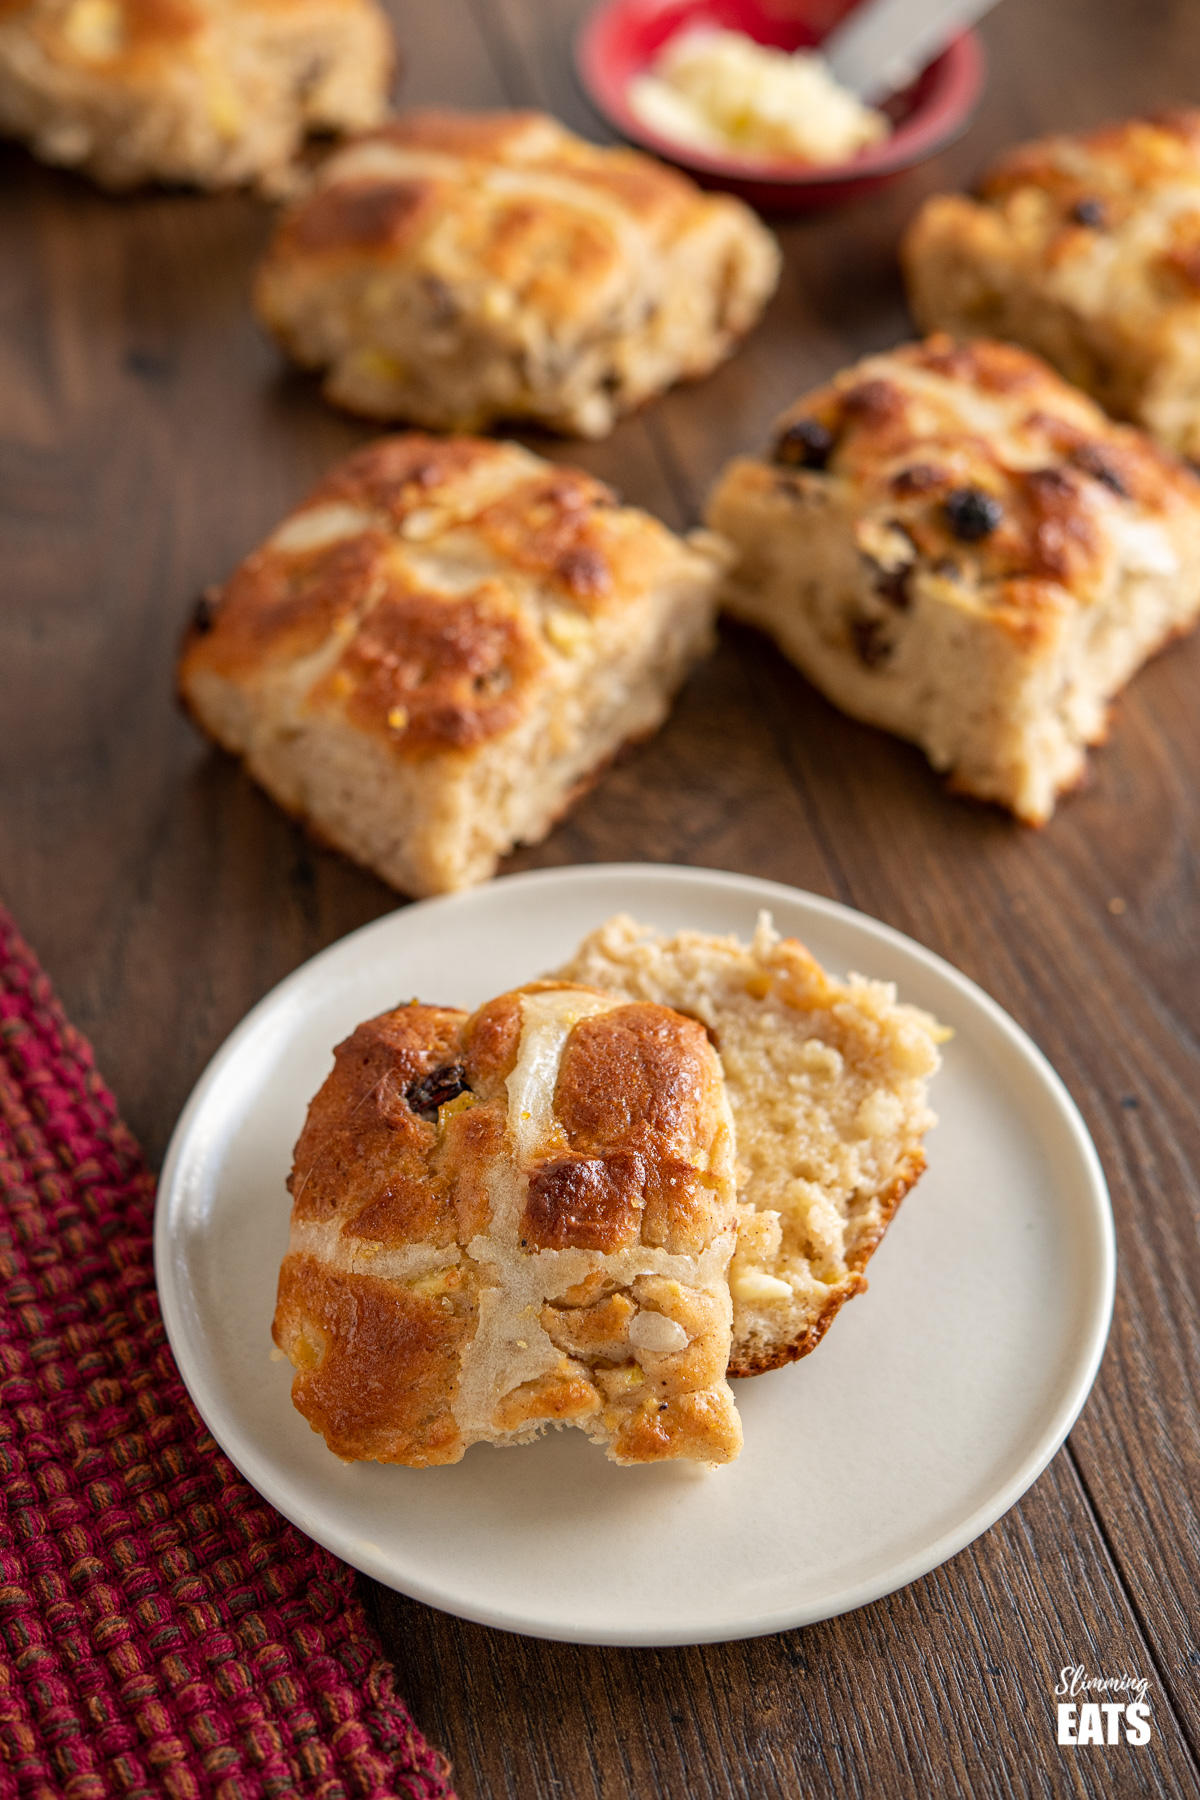 sliced hot cross bun on a plate with scattered hot cross buns in the background